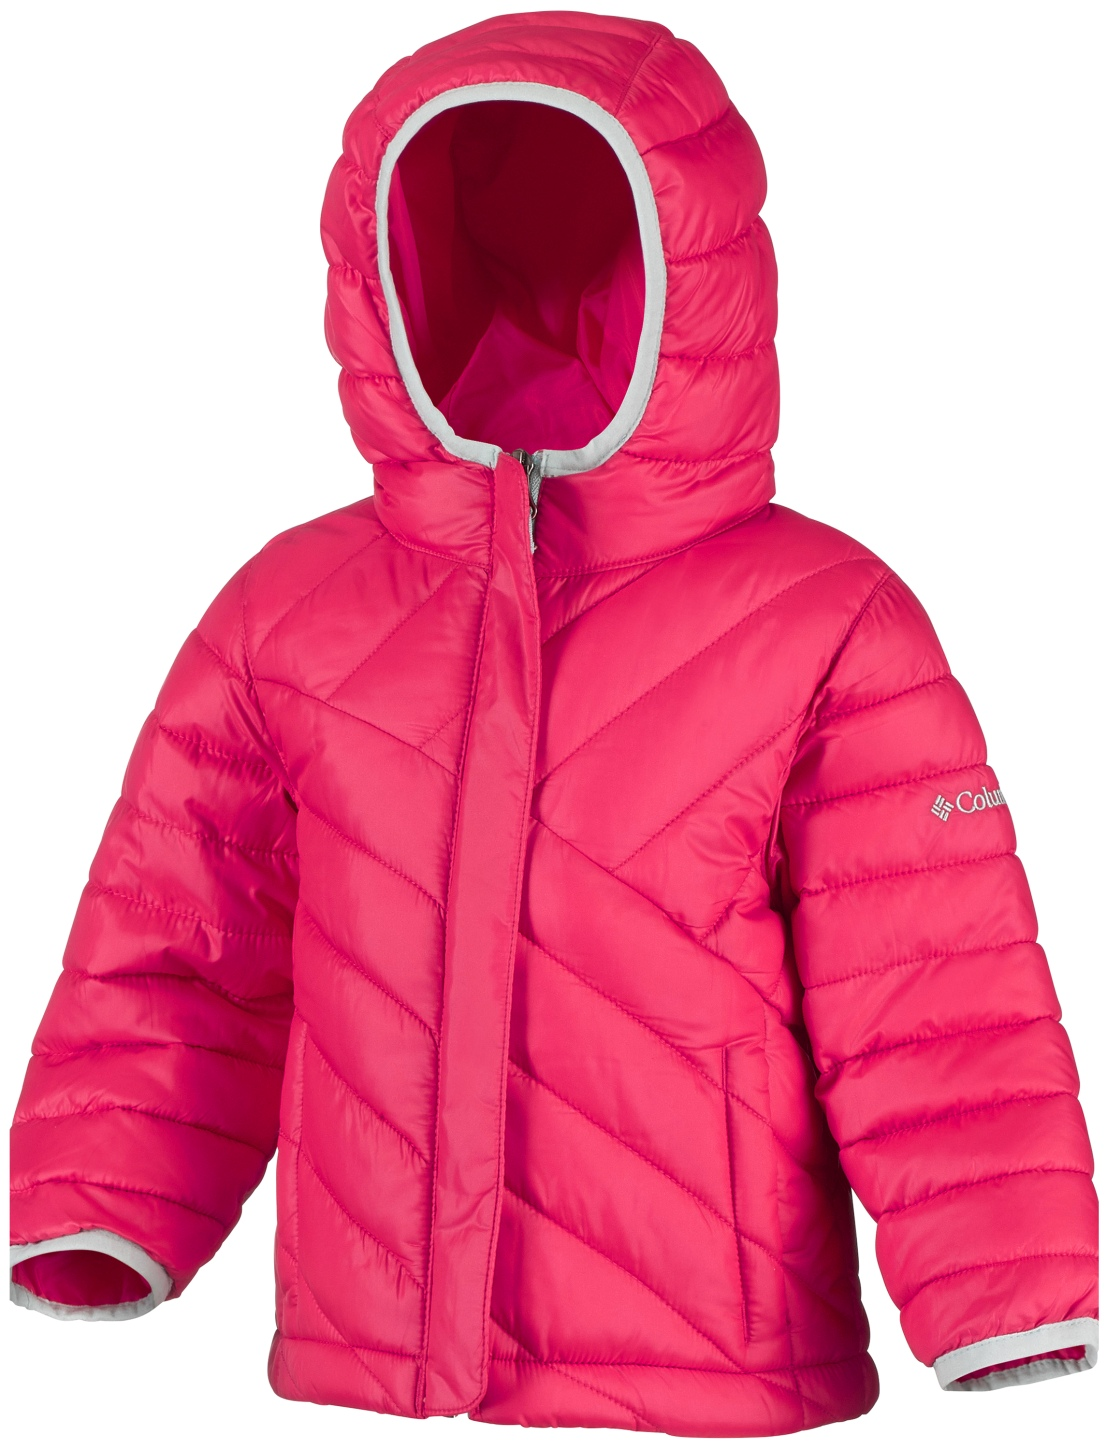 Columbia Toddlers' Powder Lite Puffer Jacket Red Camelia-30